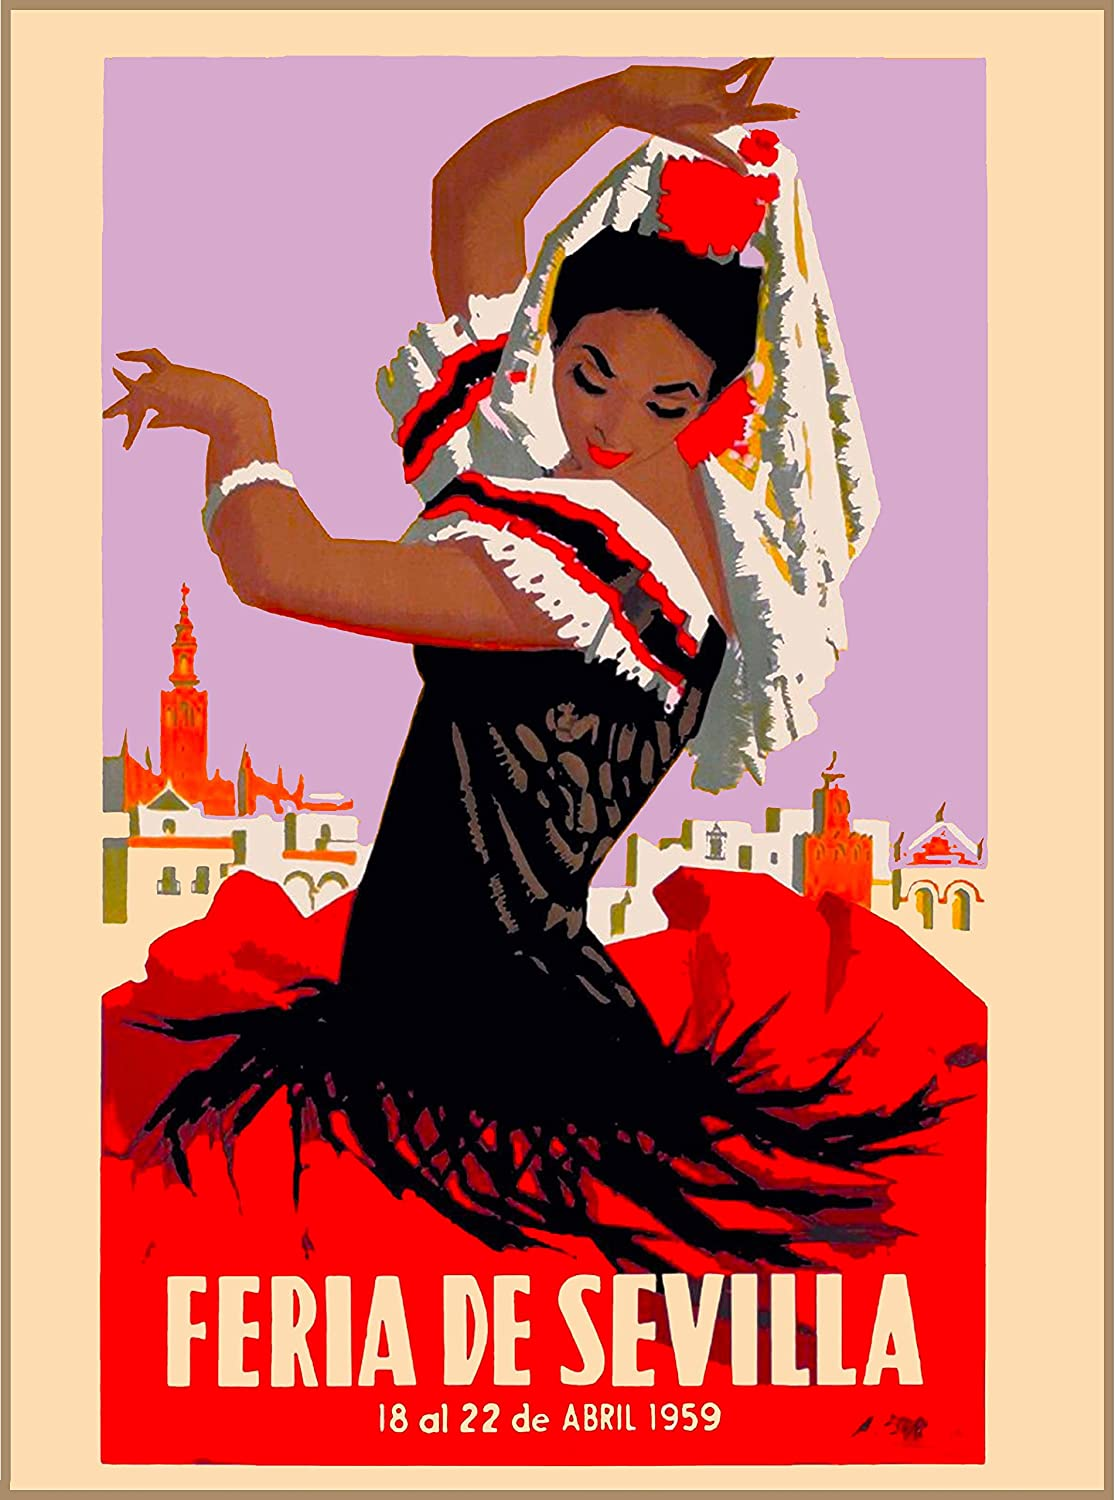 A SLICE IN TIME 1959 Feria de Sevilla Seville Spain Spanish Vintage Travel Advertisement Art Collectible Wall Decor Poster Print. Measures 10 x 13.5 inches